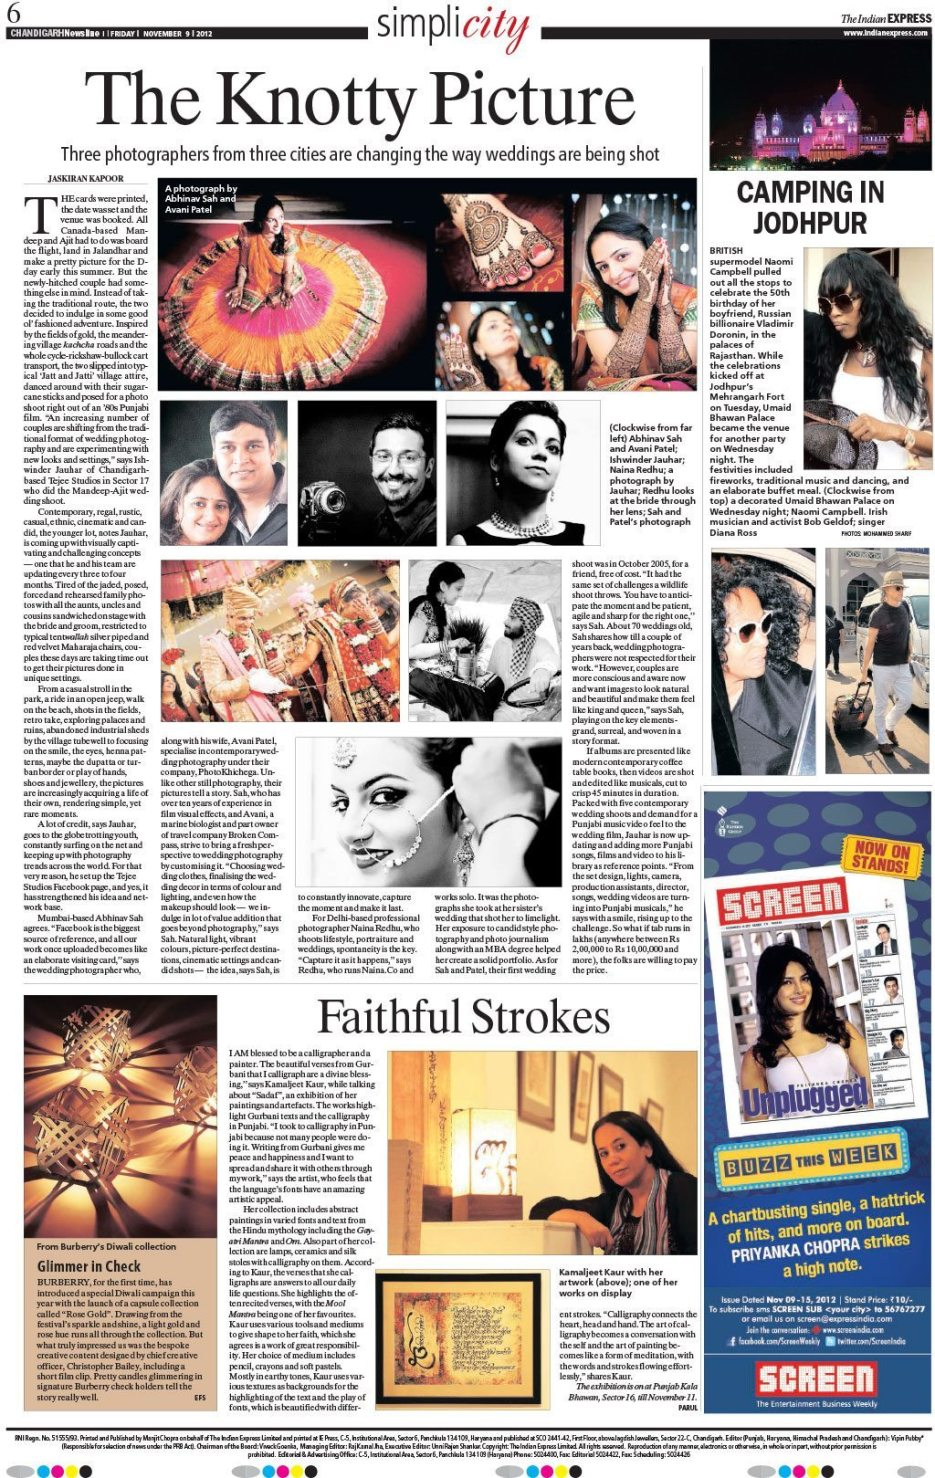 The Knotty Picture by Jaskiran Kapoor. Indian Express Chandigarh Newsline : Indian wedding photographer Naina Redhu